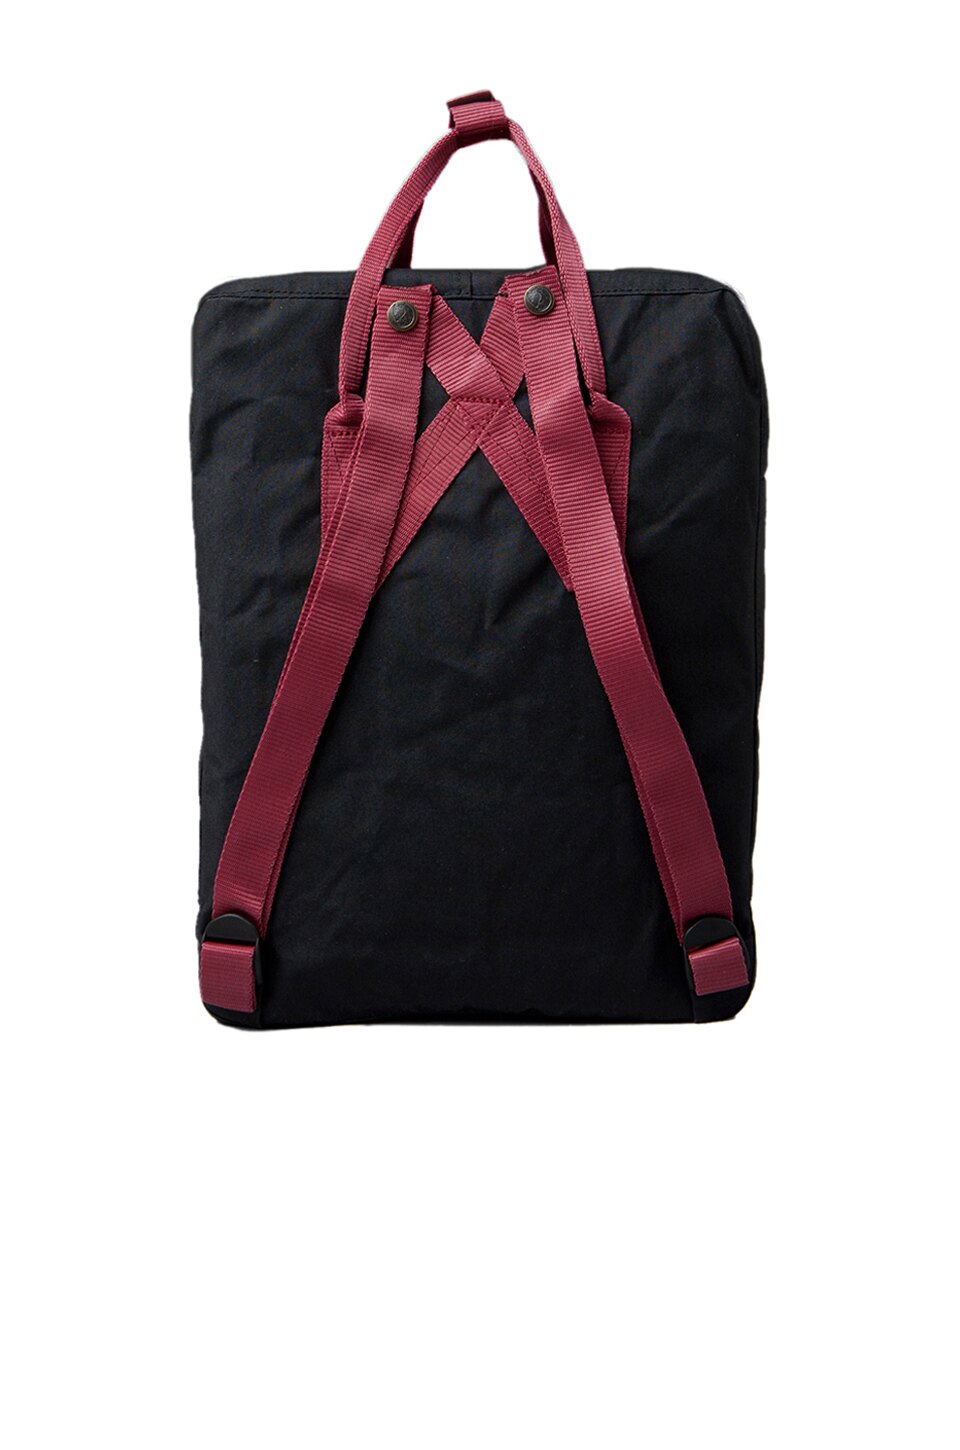 【Fjallraven Kanken 】K?nken Classic 550-326 Black & Ox Red 黑公牛紅 3